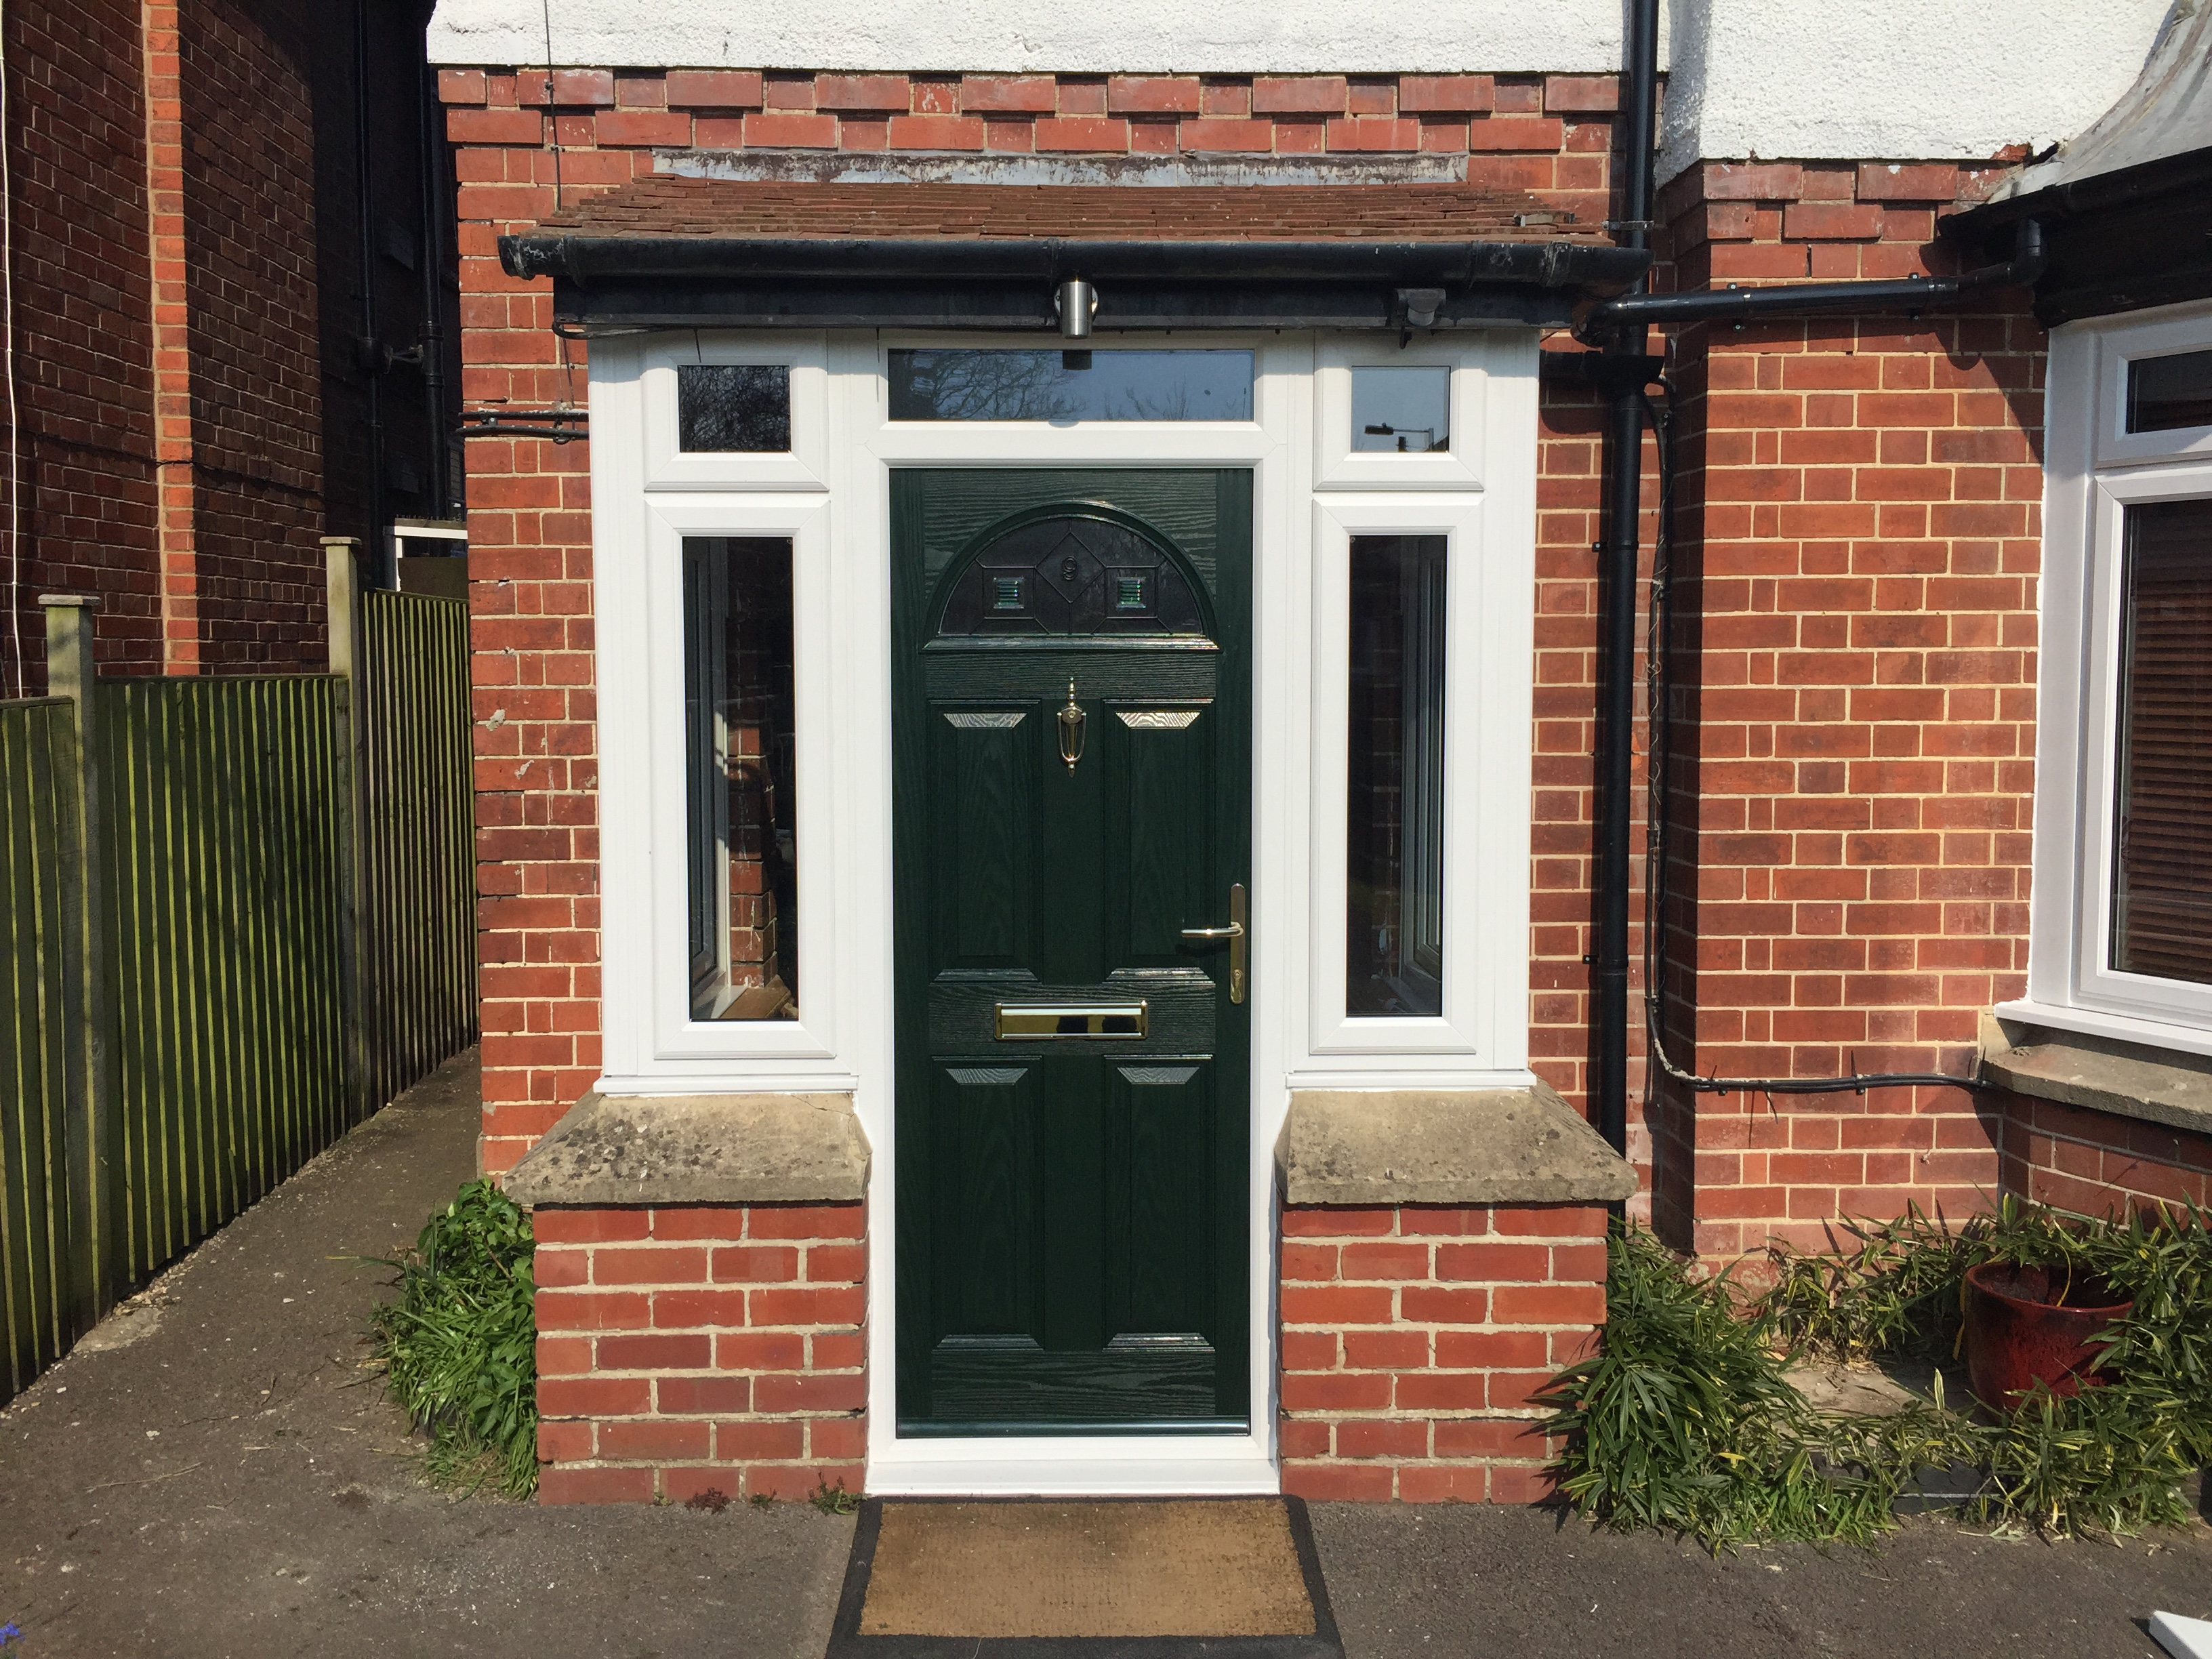 New composite front door and windows